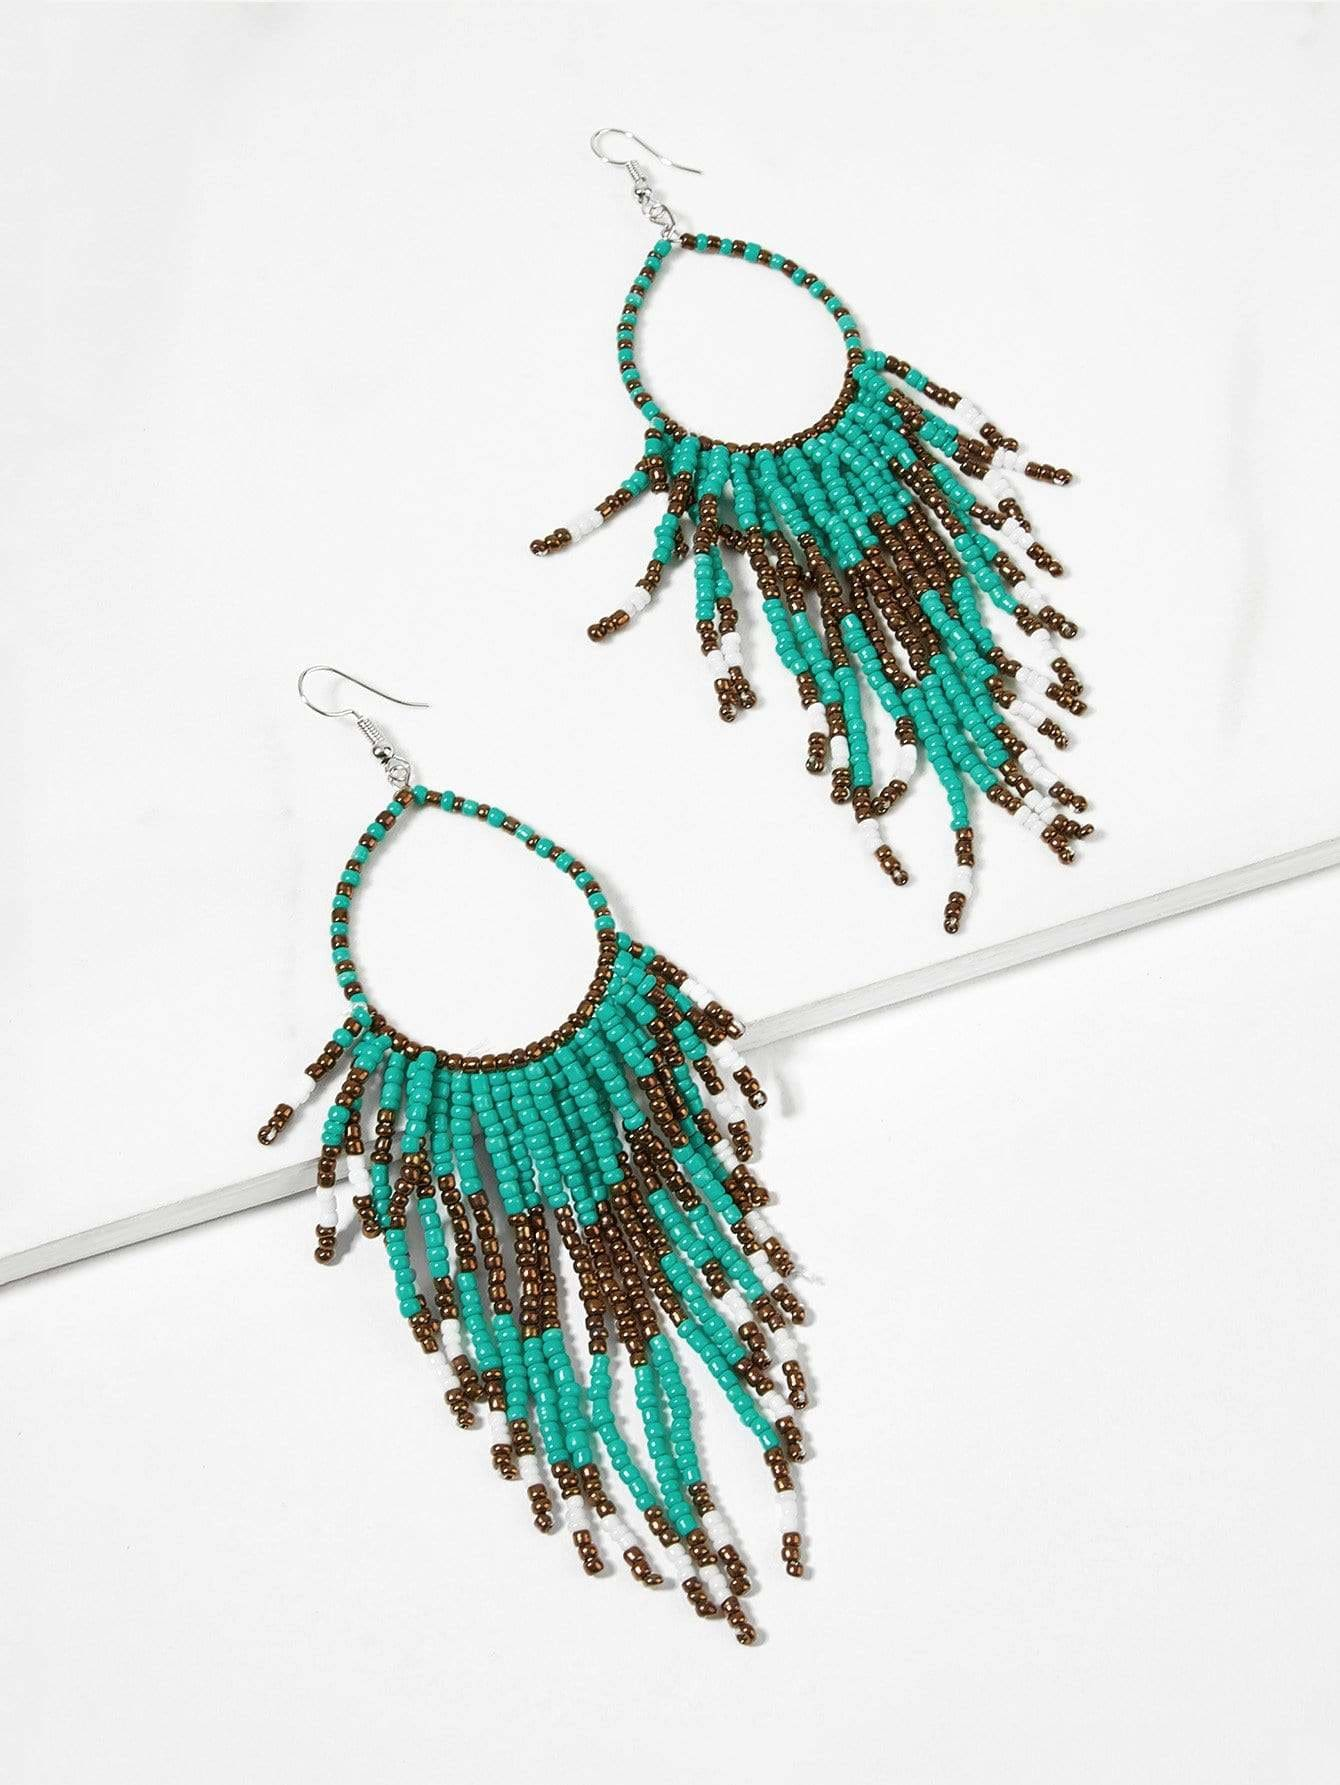 Color Block Beaded Tassel Drop Earrings 1pair - Colorful - Earrings